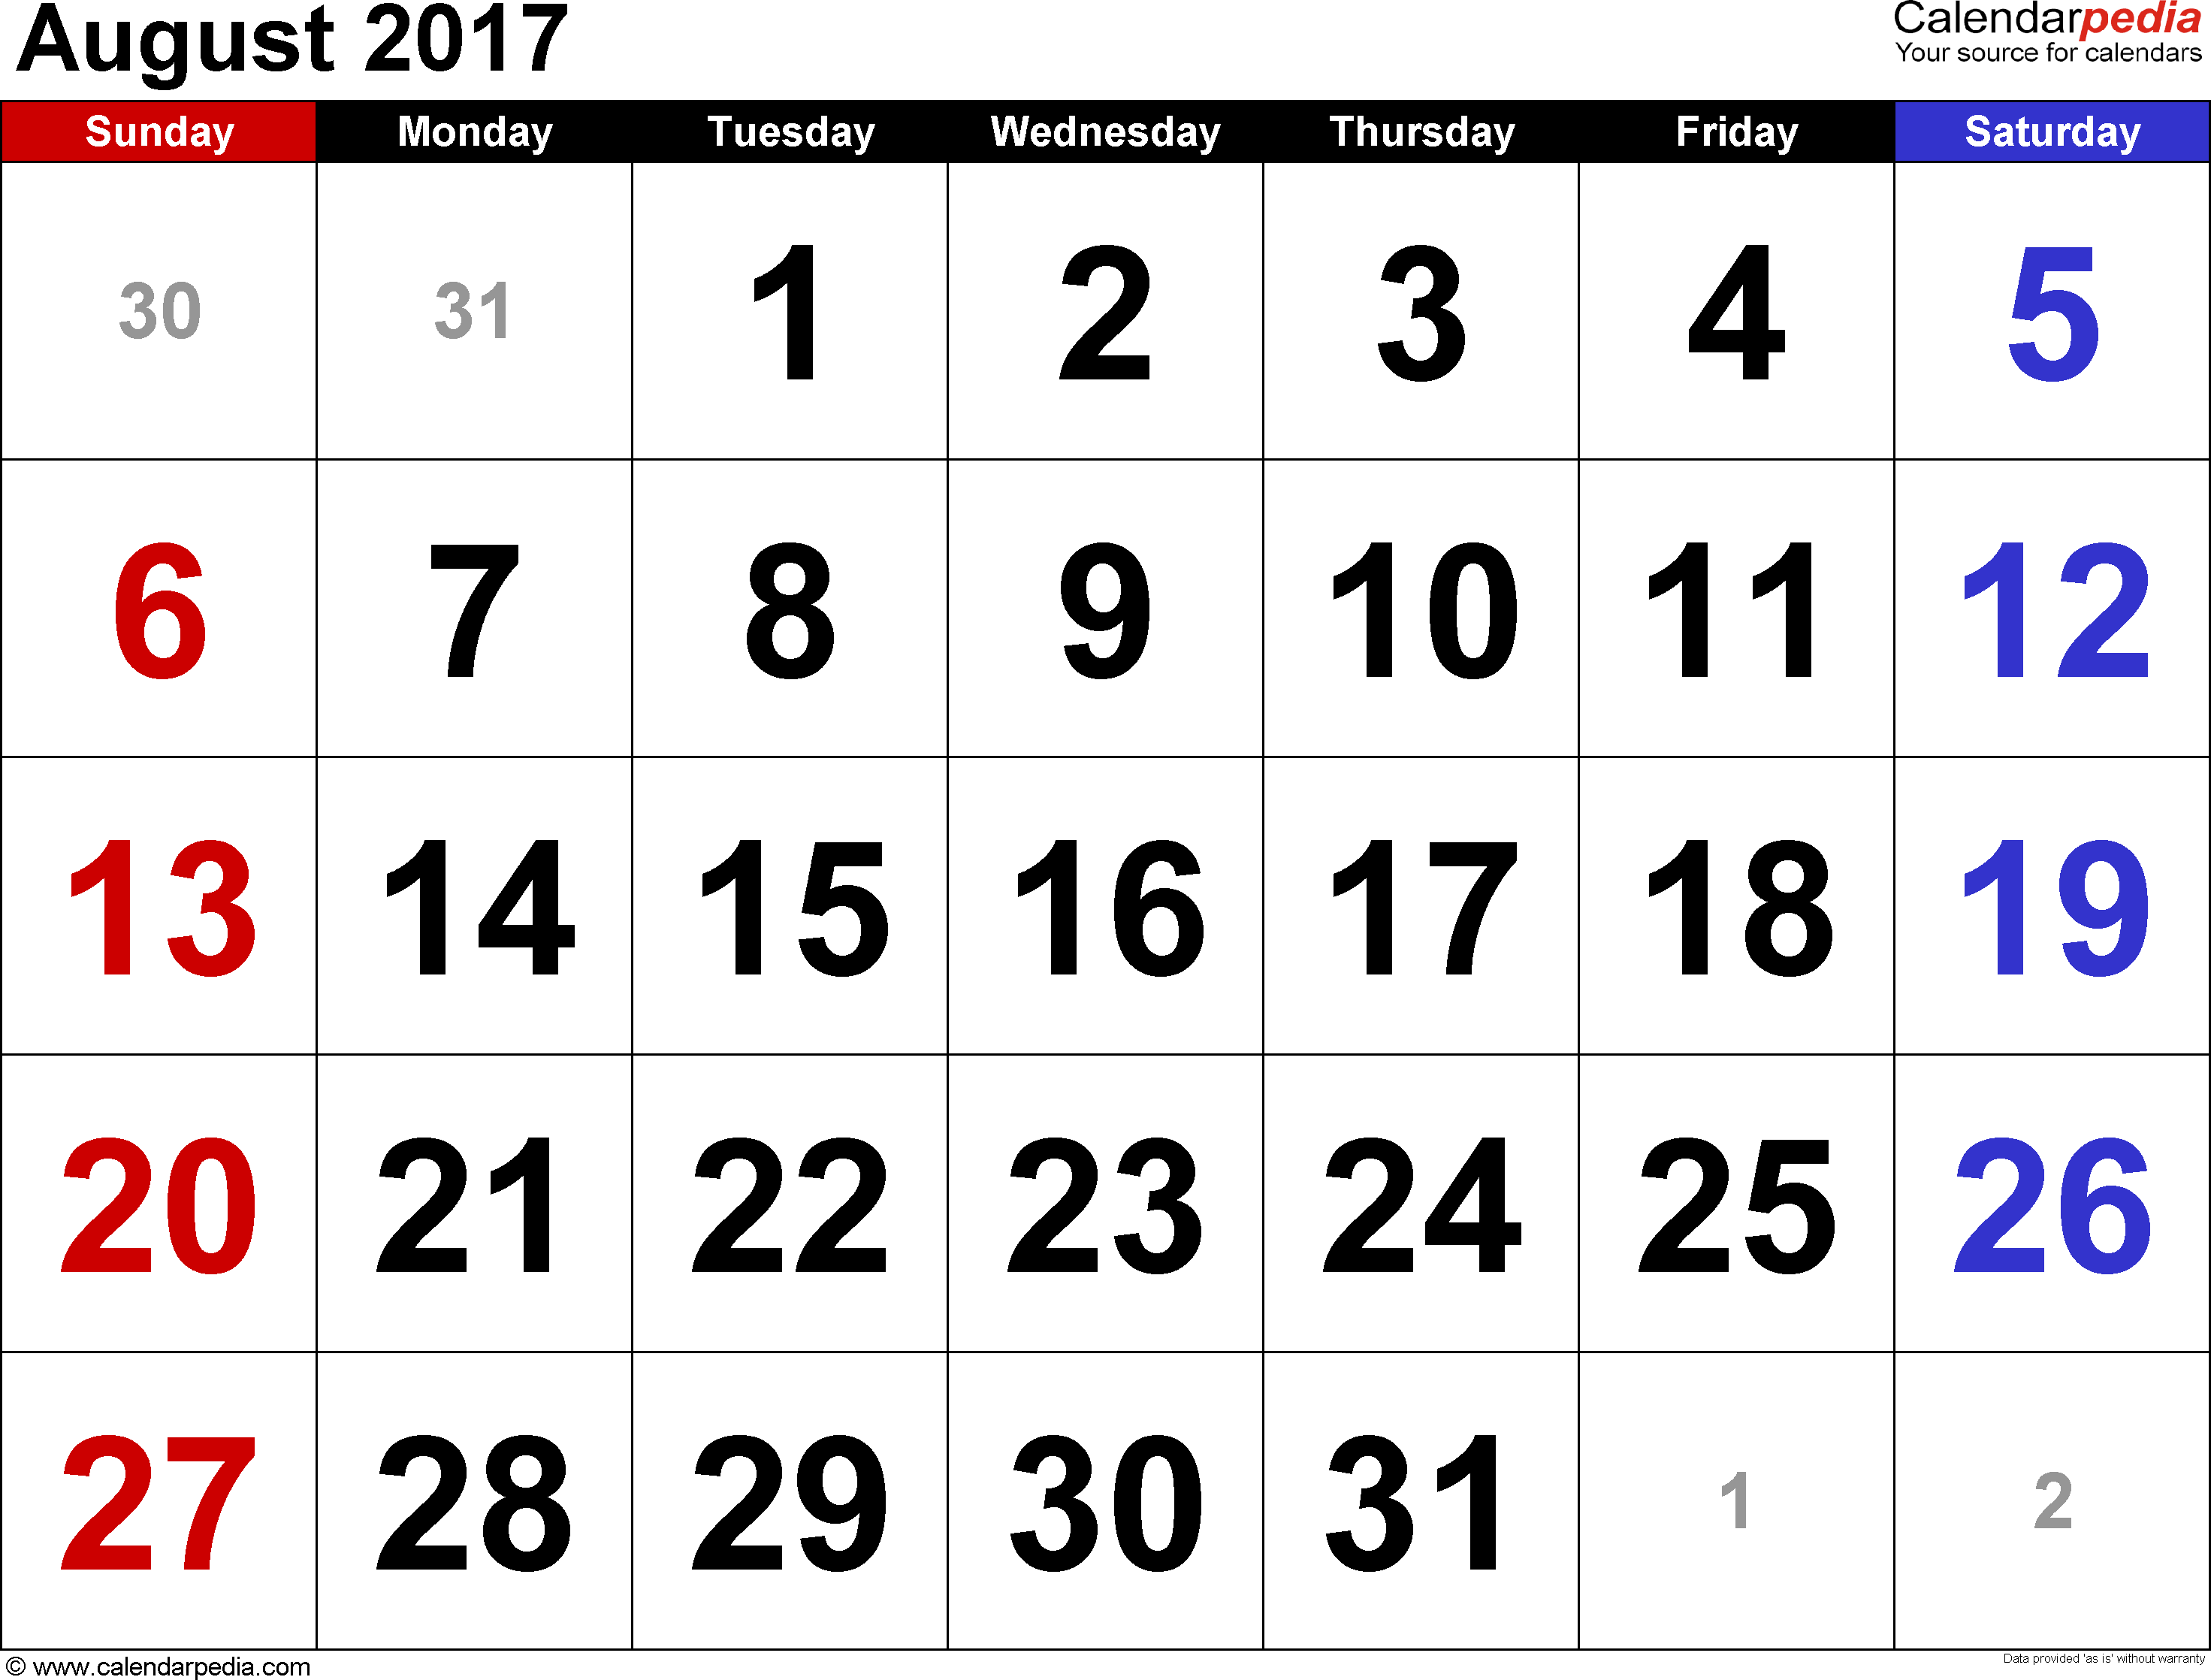 Calendar October 2017 Word - Free Printable Calendar